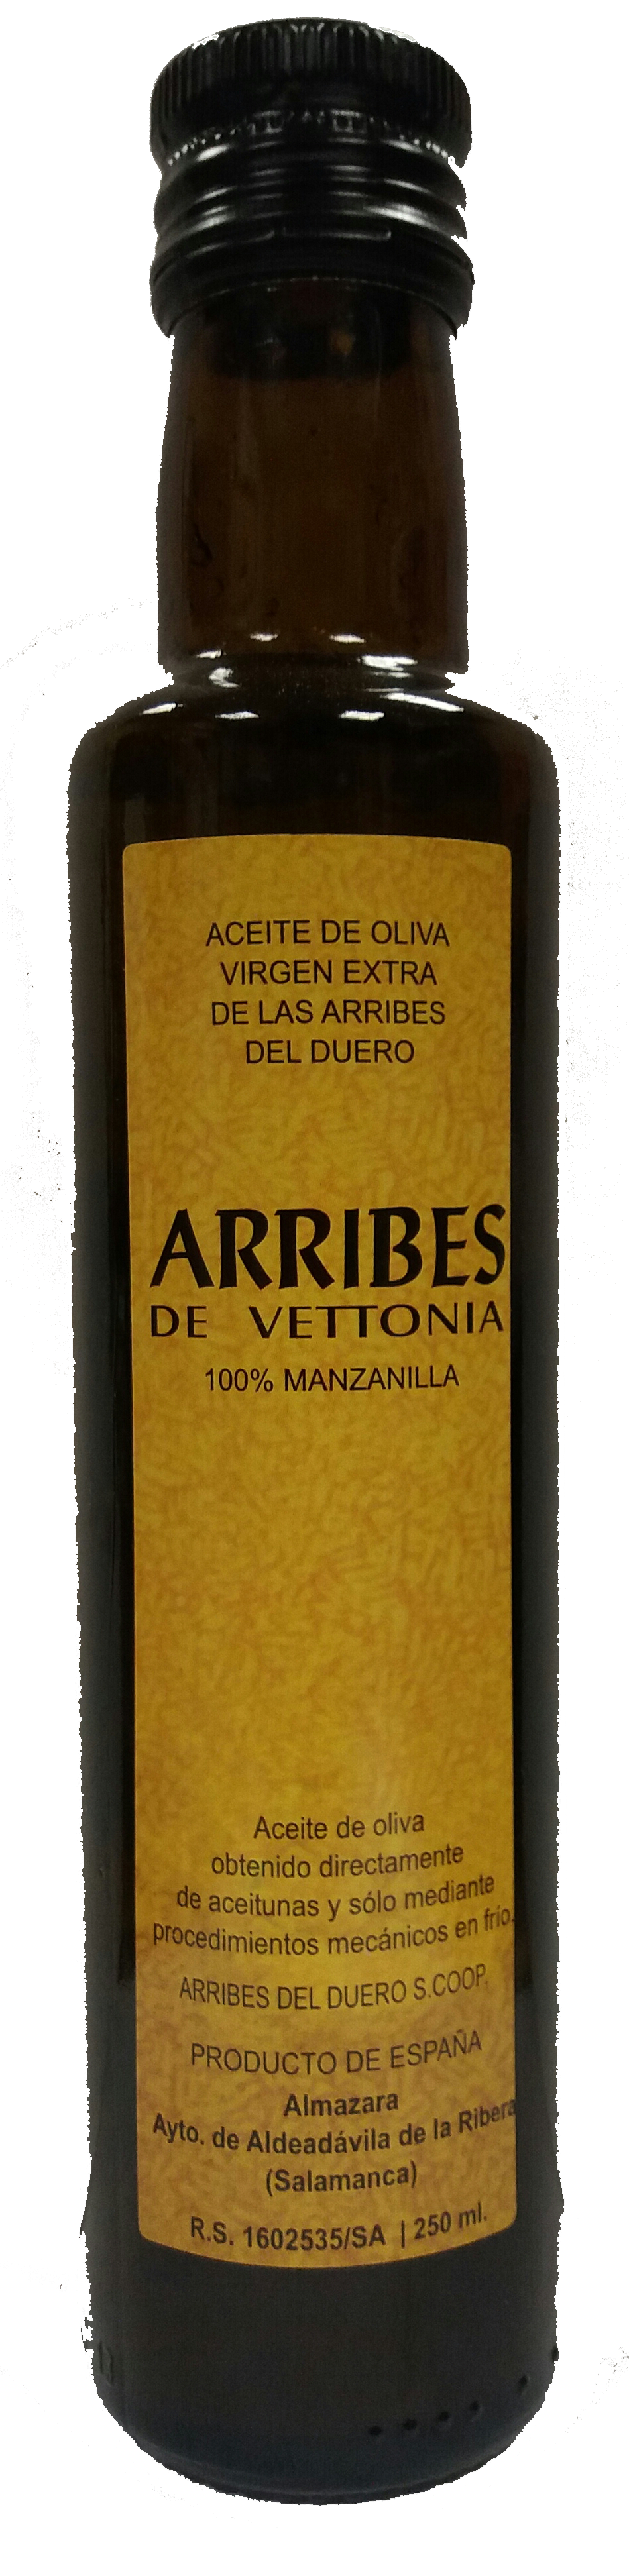 Botella aceite arribes 25cl